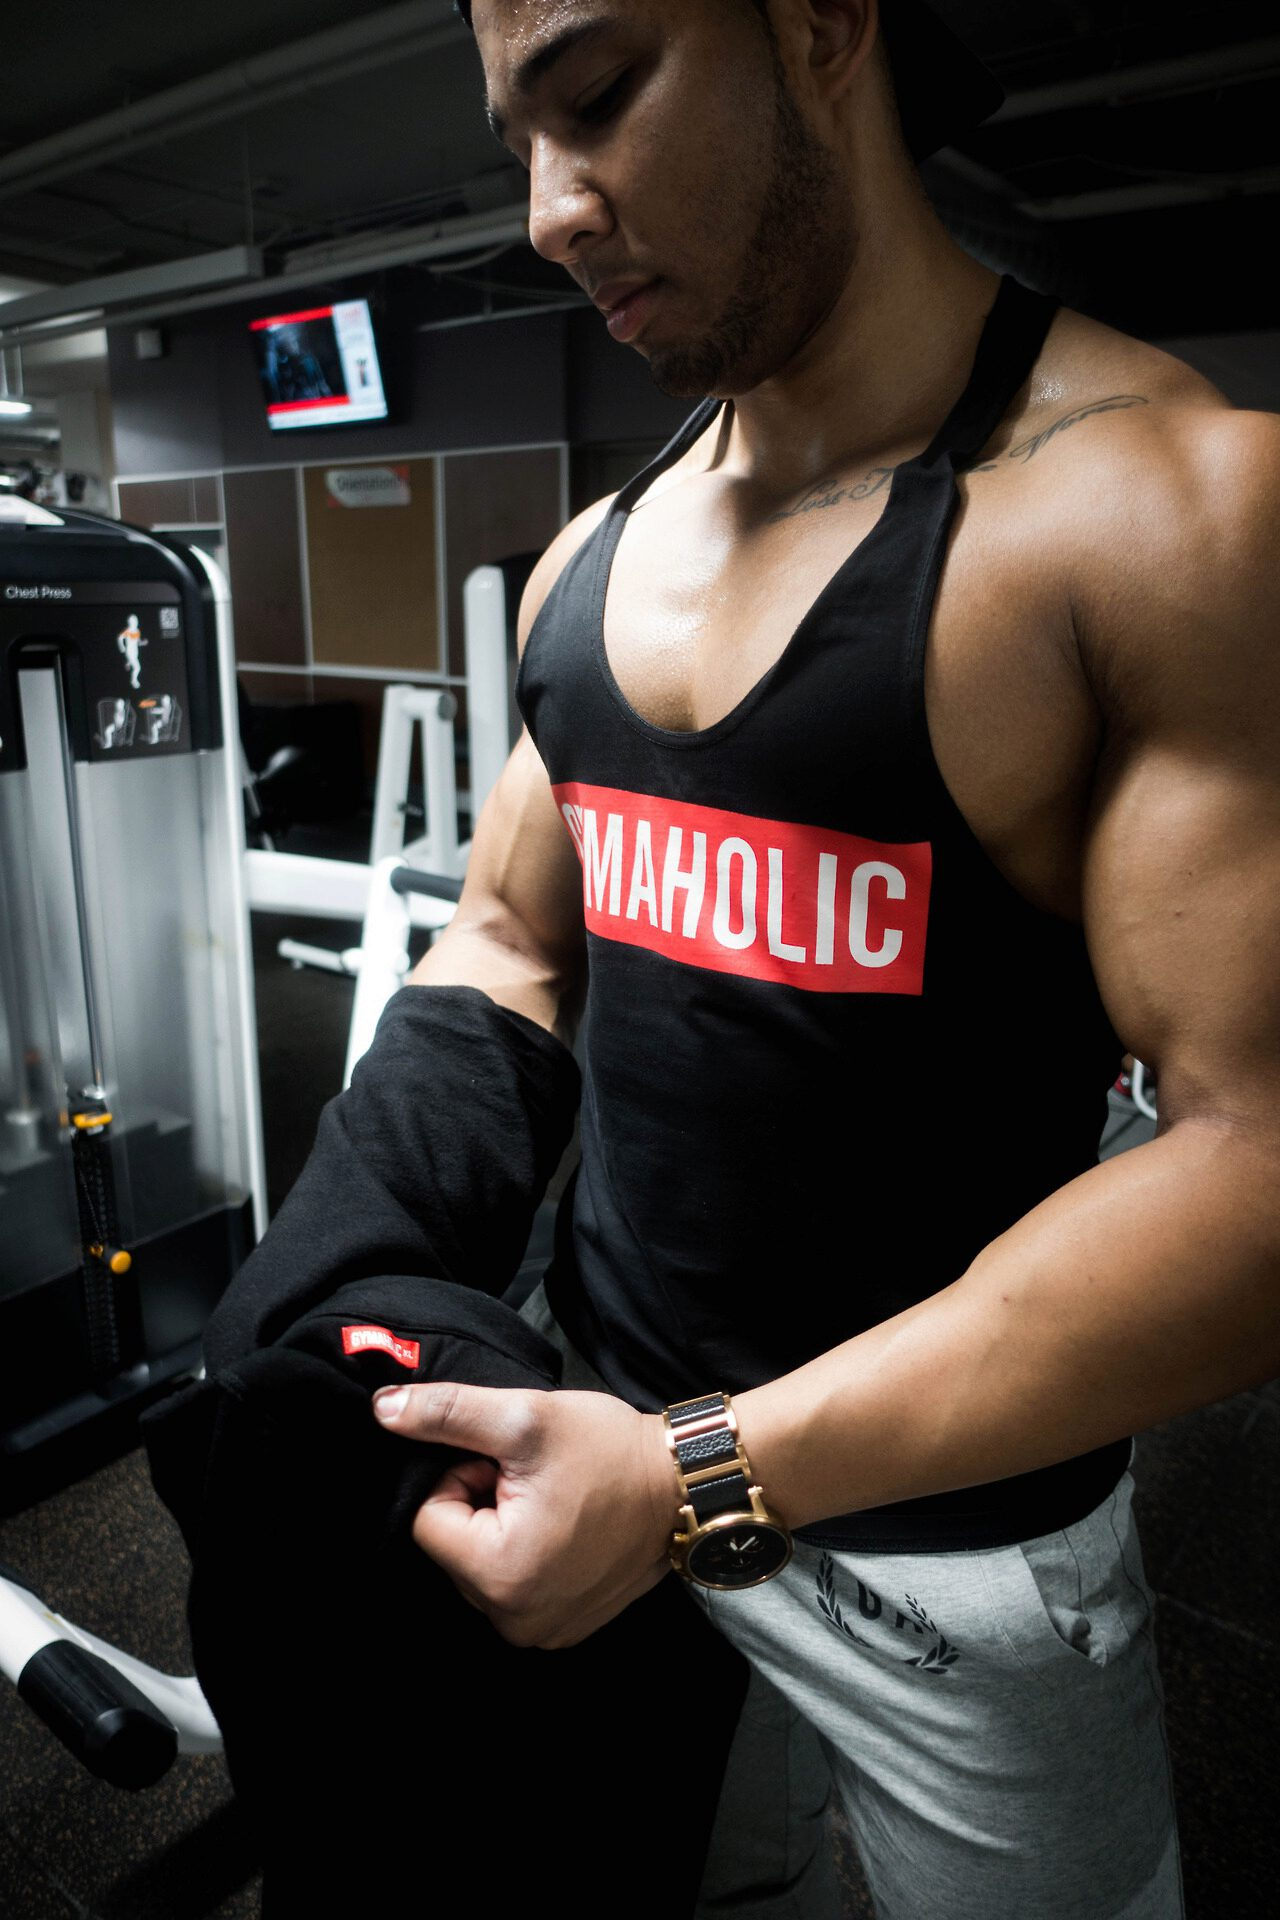 Proud to be a Gymaholic. Always working on becoming a better version of myself. #IAmAGymaholic